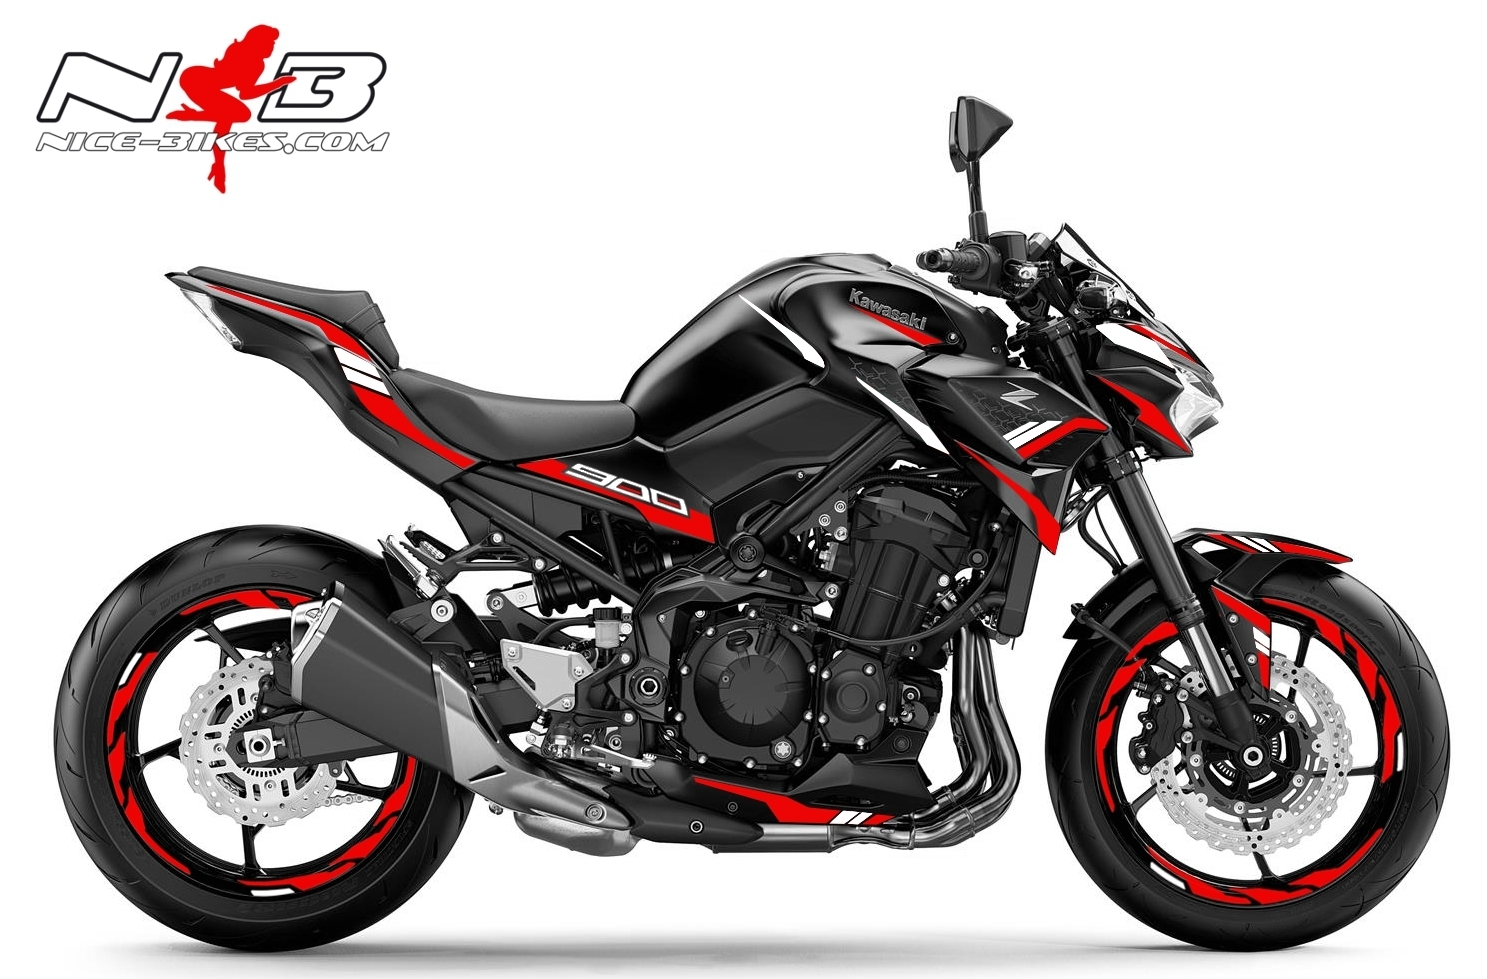 Foliendesign Kawasaki Z900 Bj. 2020 Racing Red